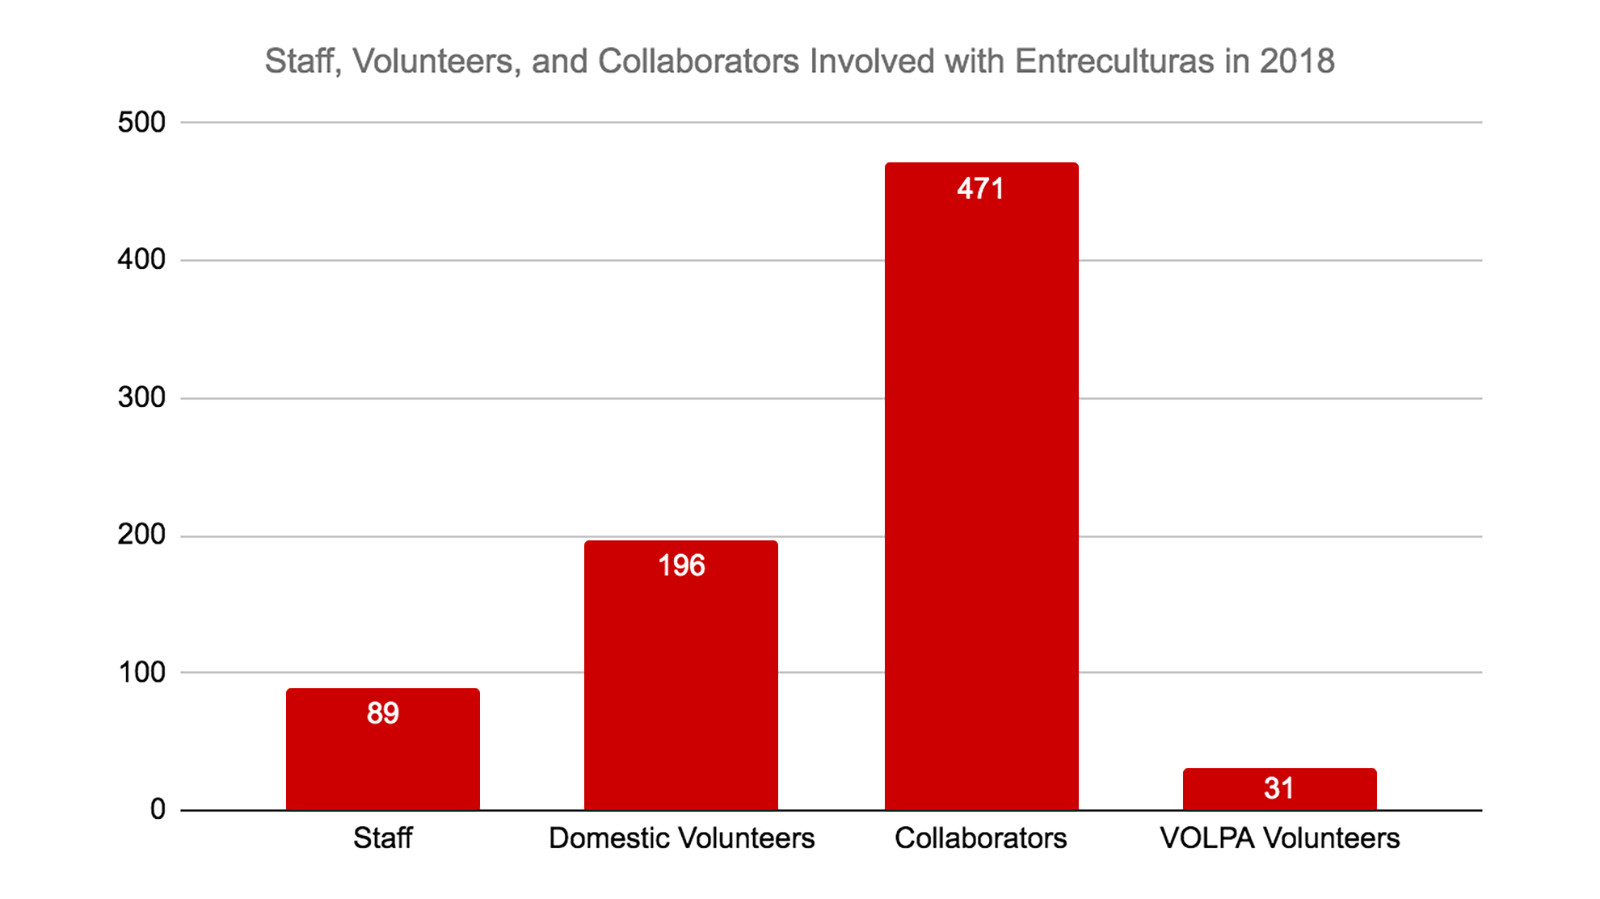 Chart of the number of staff, volunteers and collaborators involved with Entreculturas in 2018